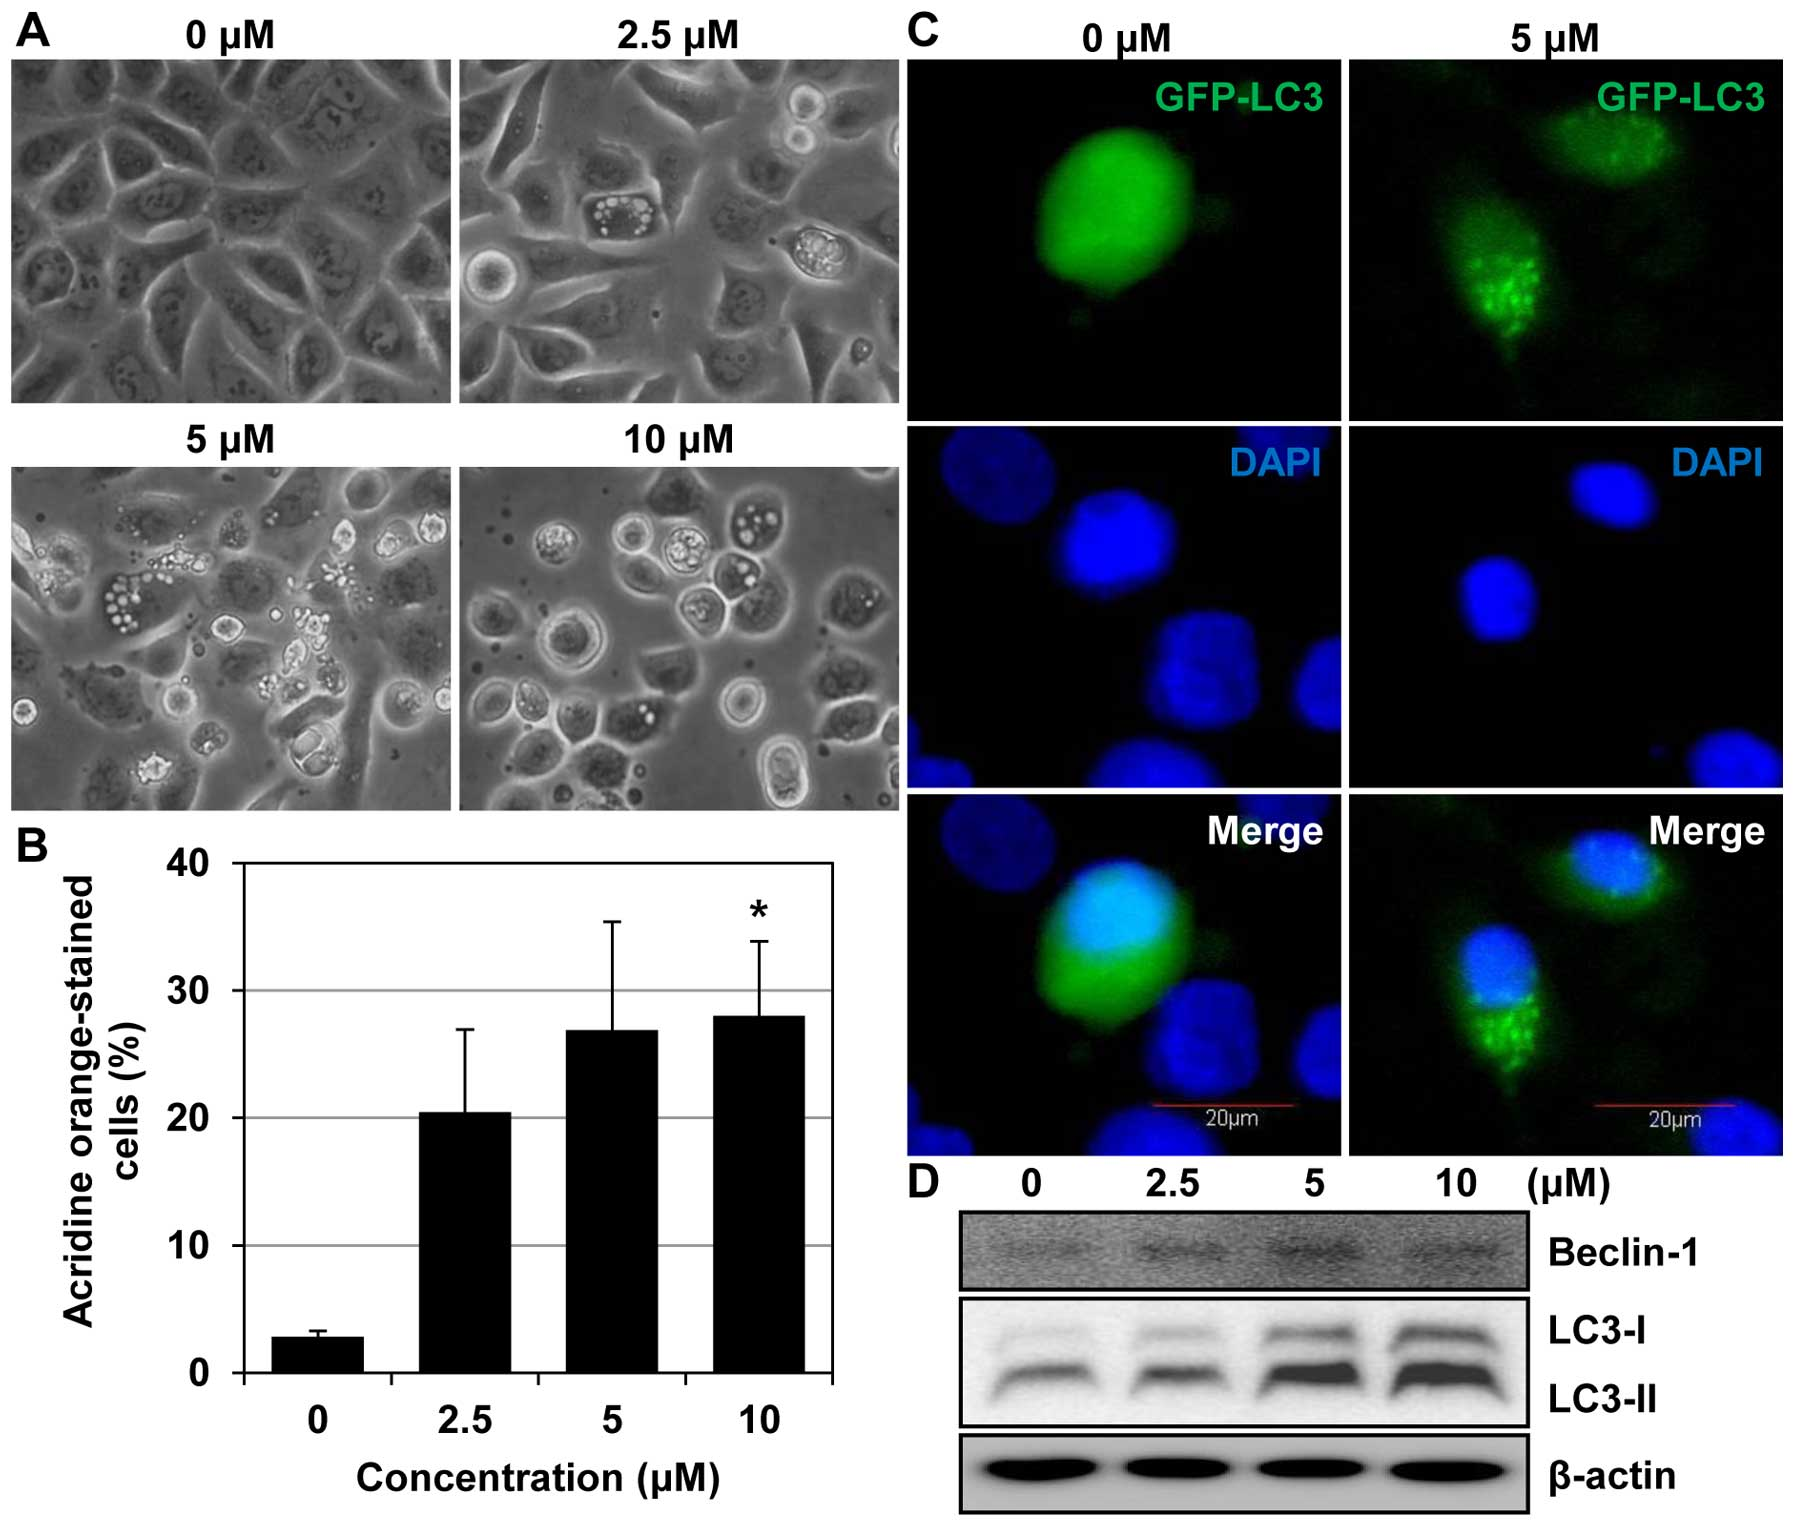 MHY218-induced apoptotic cell death is enhanced by the inhibition of